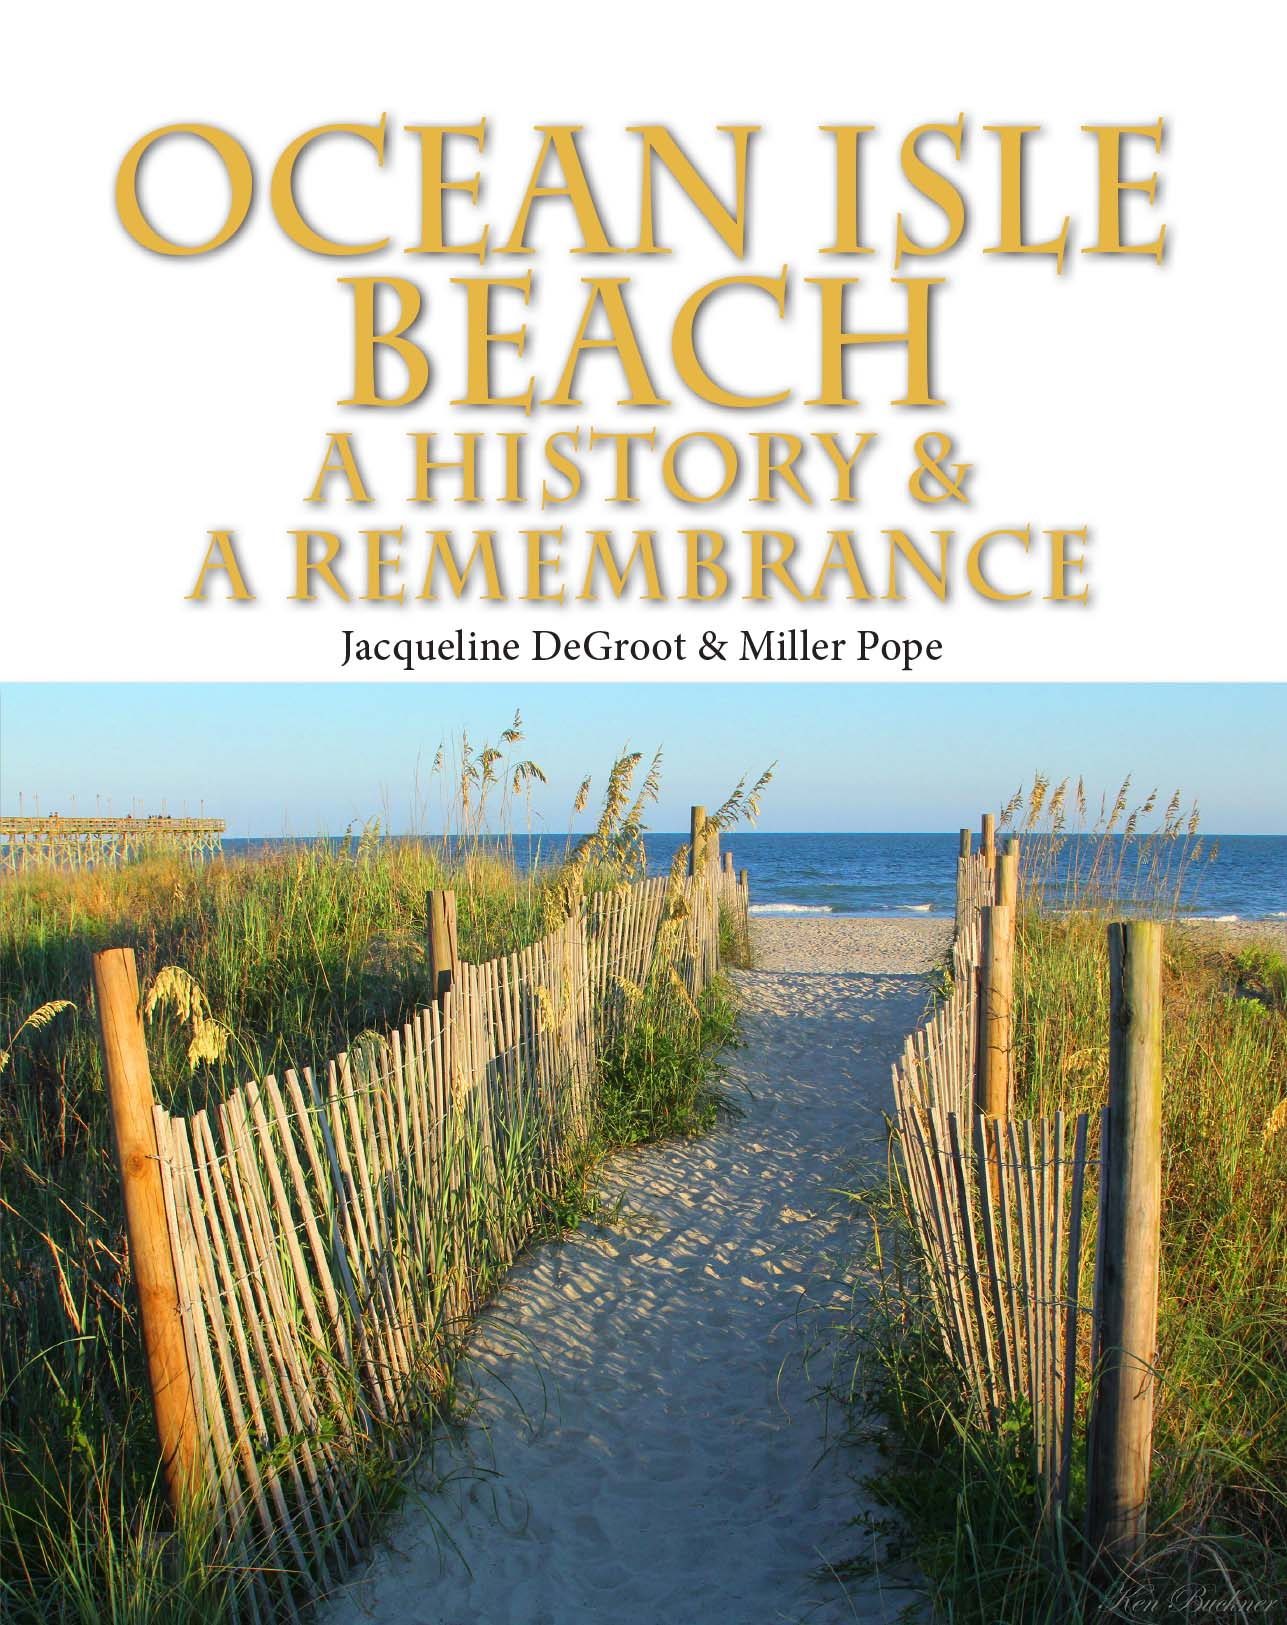 OIB History Book 2018 Hardcover Edition